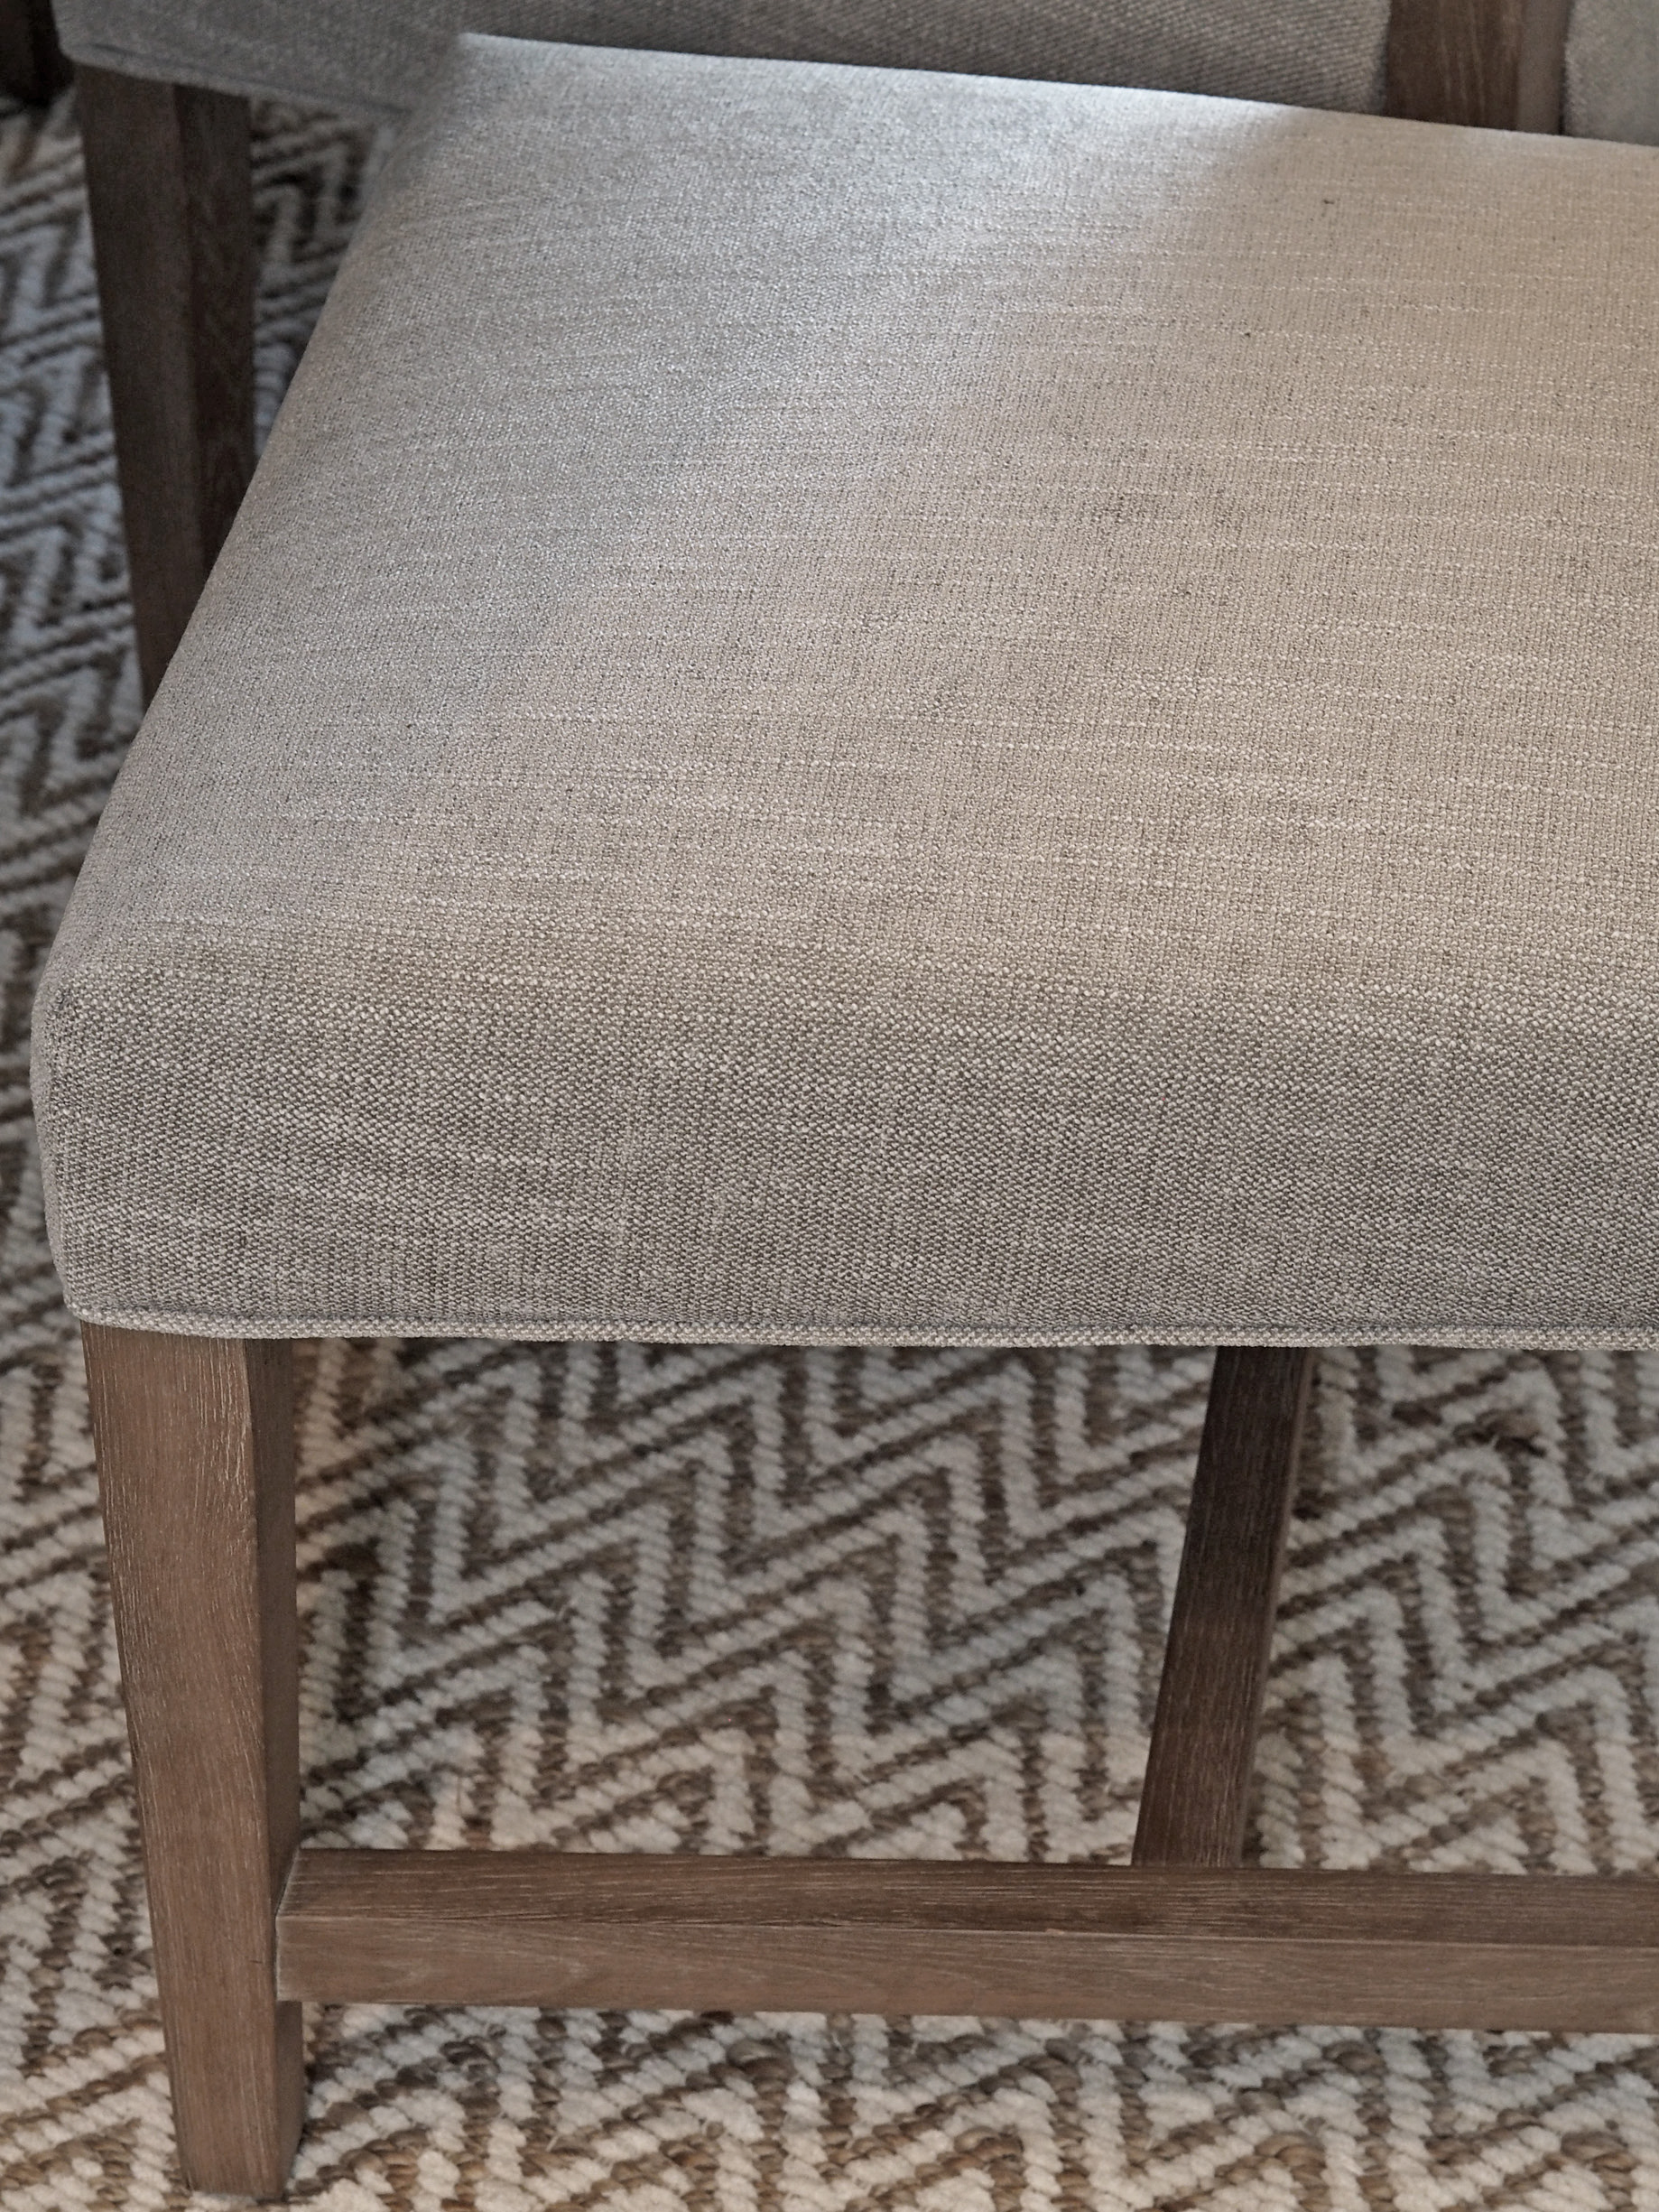 Pottery Barn Ashton Non-Tufted Dining Chairs in Silver Taupe. Showing the fabric and wood detail up-close. Honestly, these chairs are well worth the price! Incredibly sturdy and comfortable!